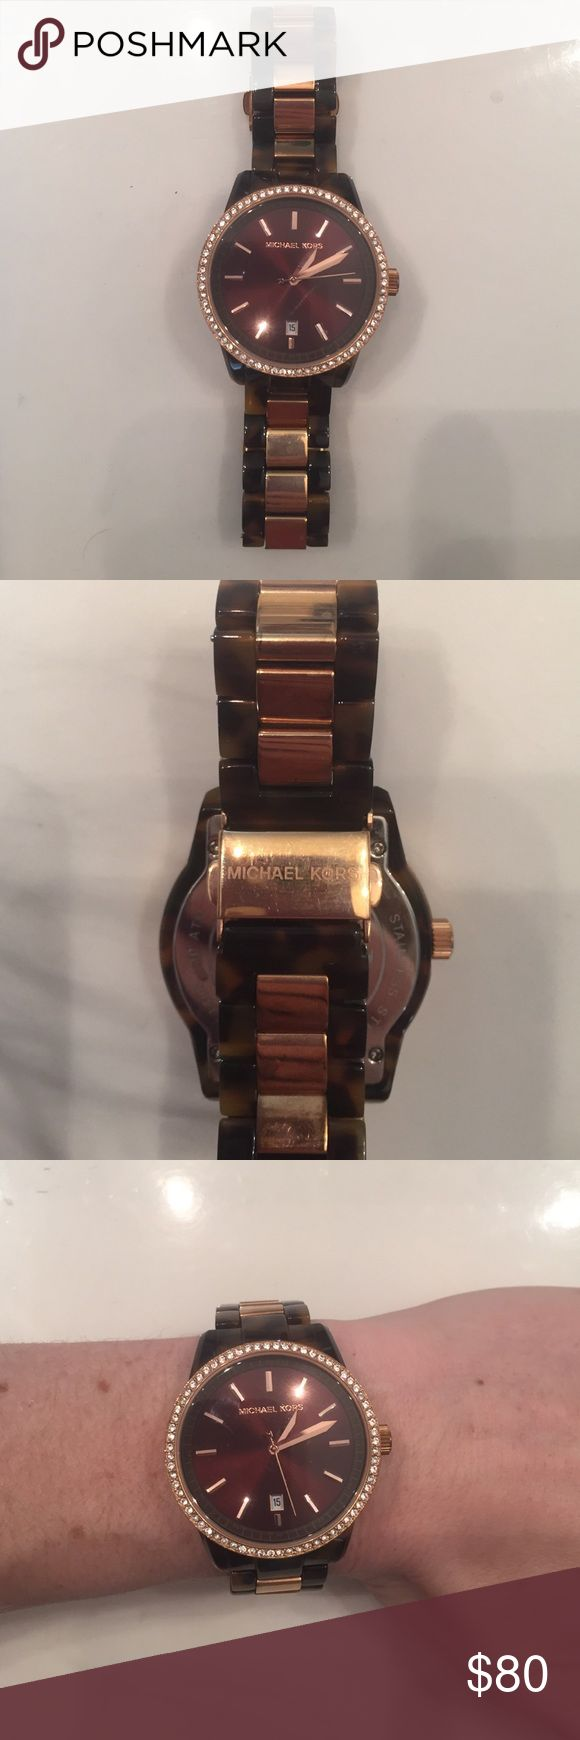 Michael Kors brown tortoise watch Michael Kors brown tortoise watch. Looks brand new - originally $250. Still works and doesn't need a new battery 🙂 Michael Kors Accessories Watches